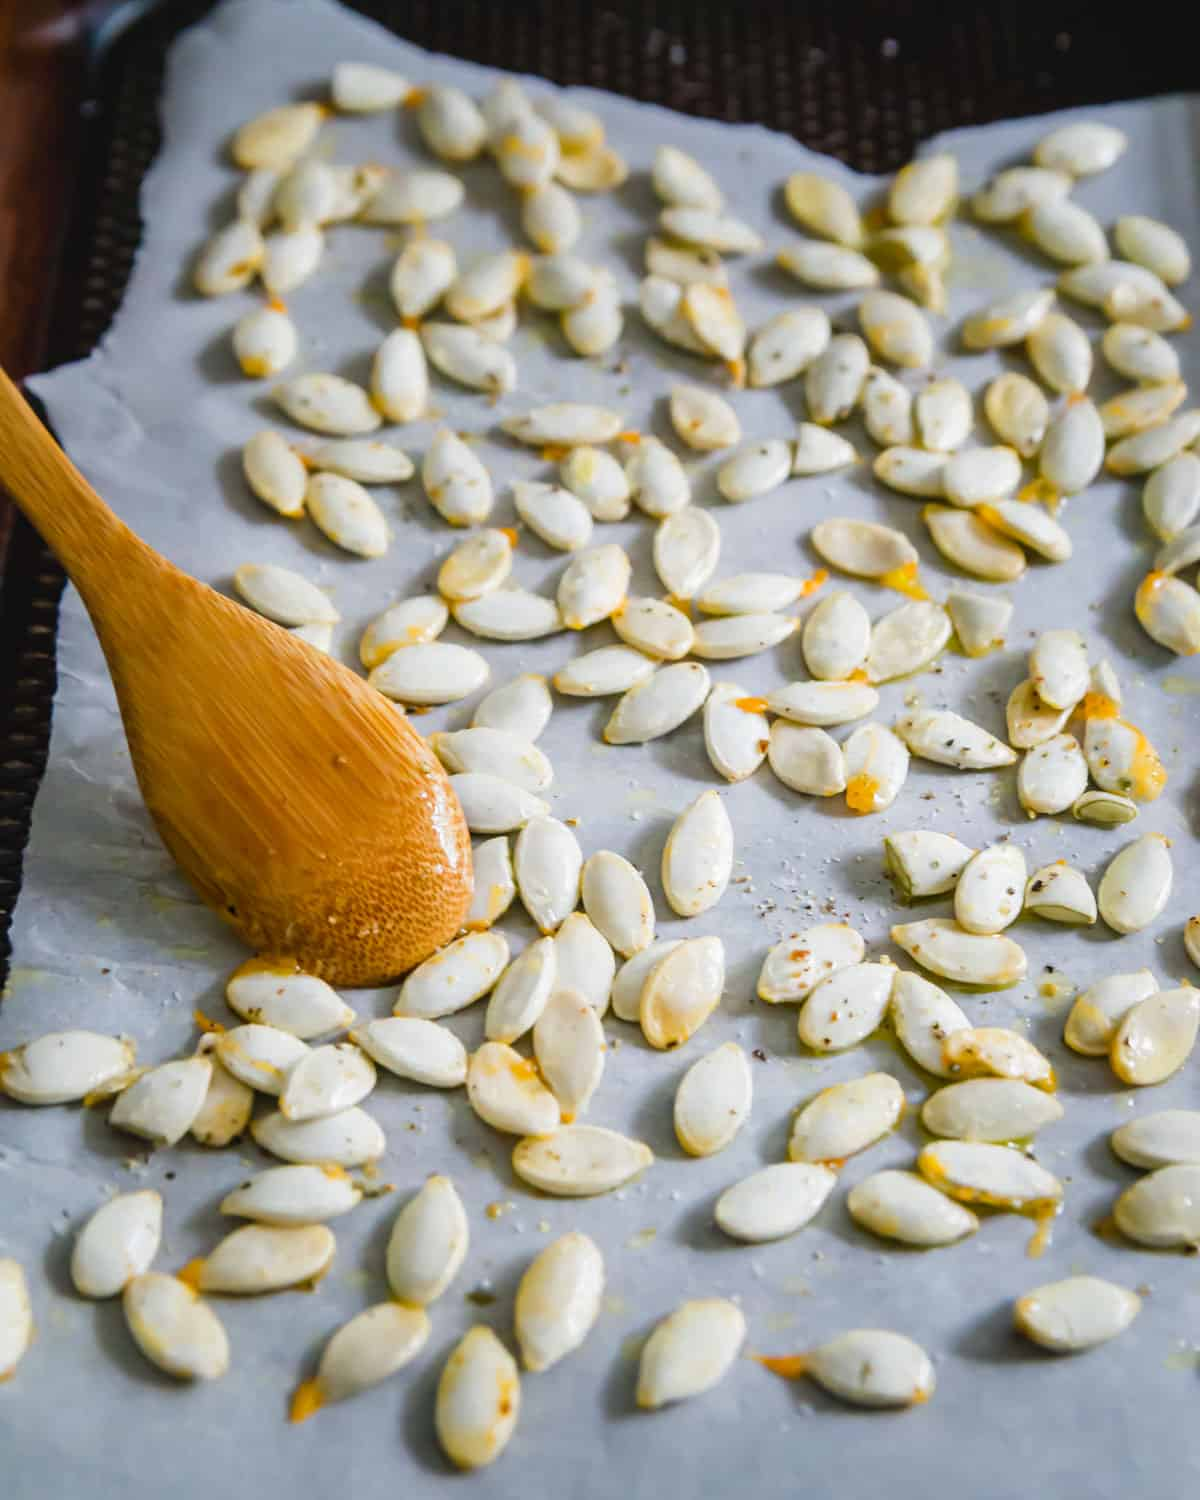 Squash seeds cleaned, seasoned and ready to be roasted in an oven